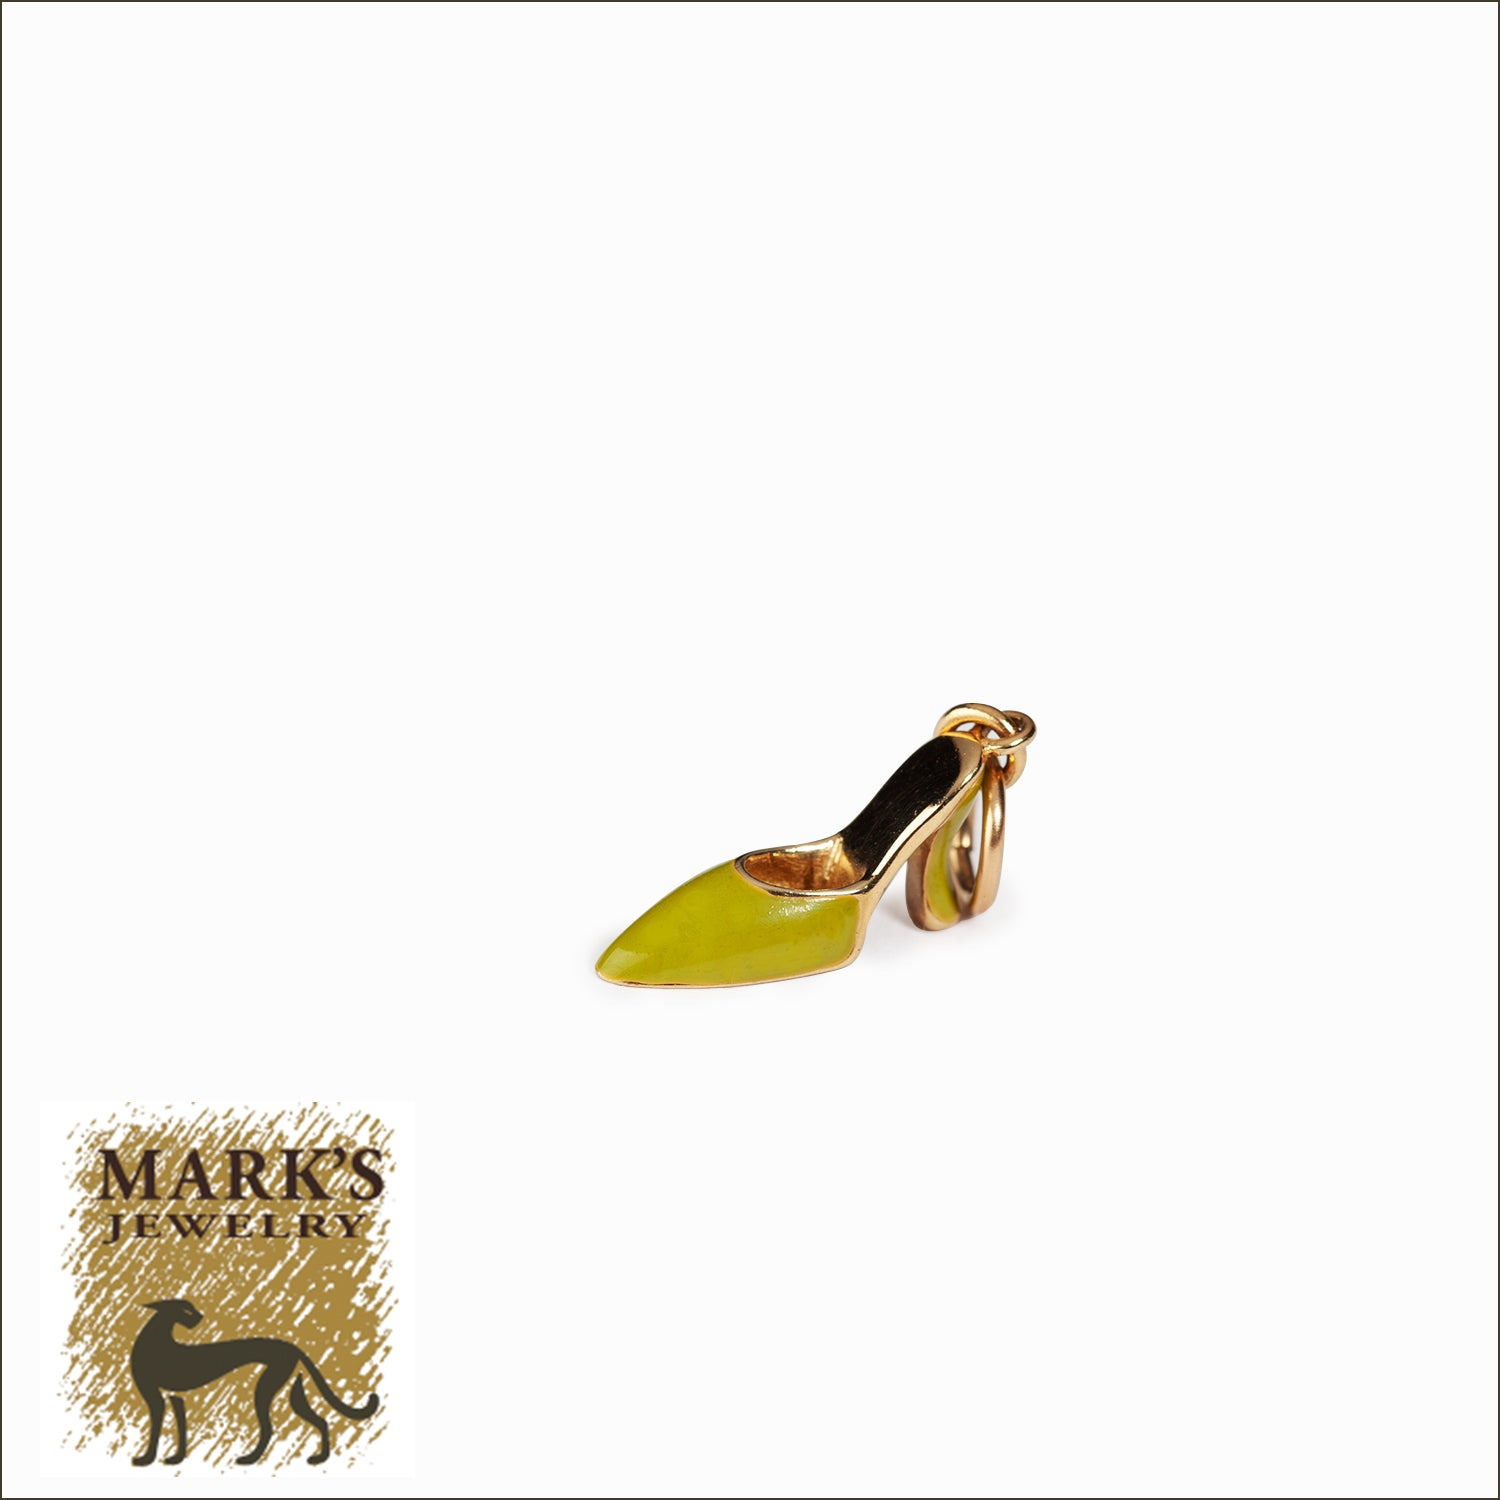 14K Yellow Gold Green Enamel Shoe Charm